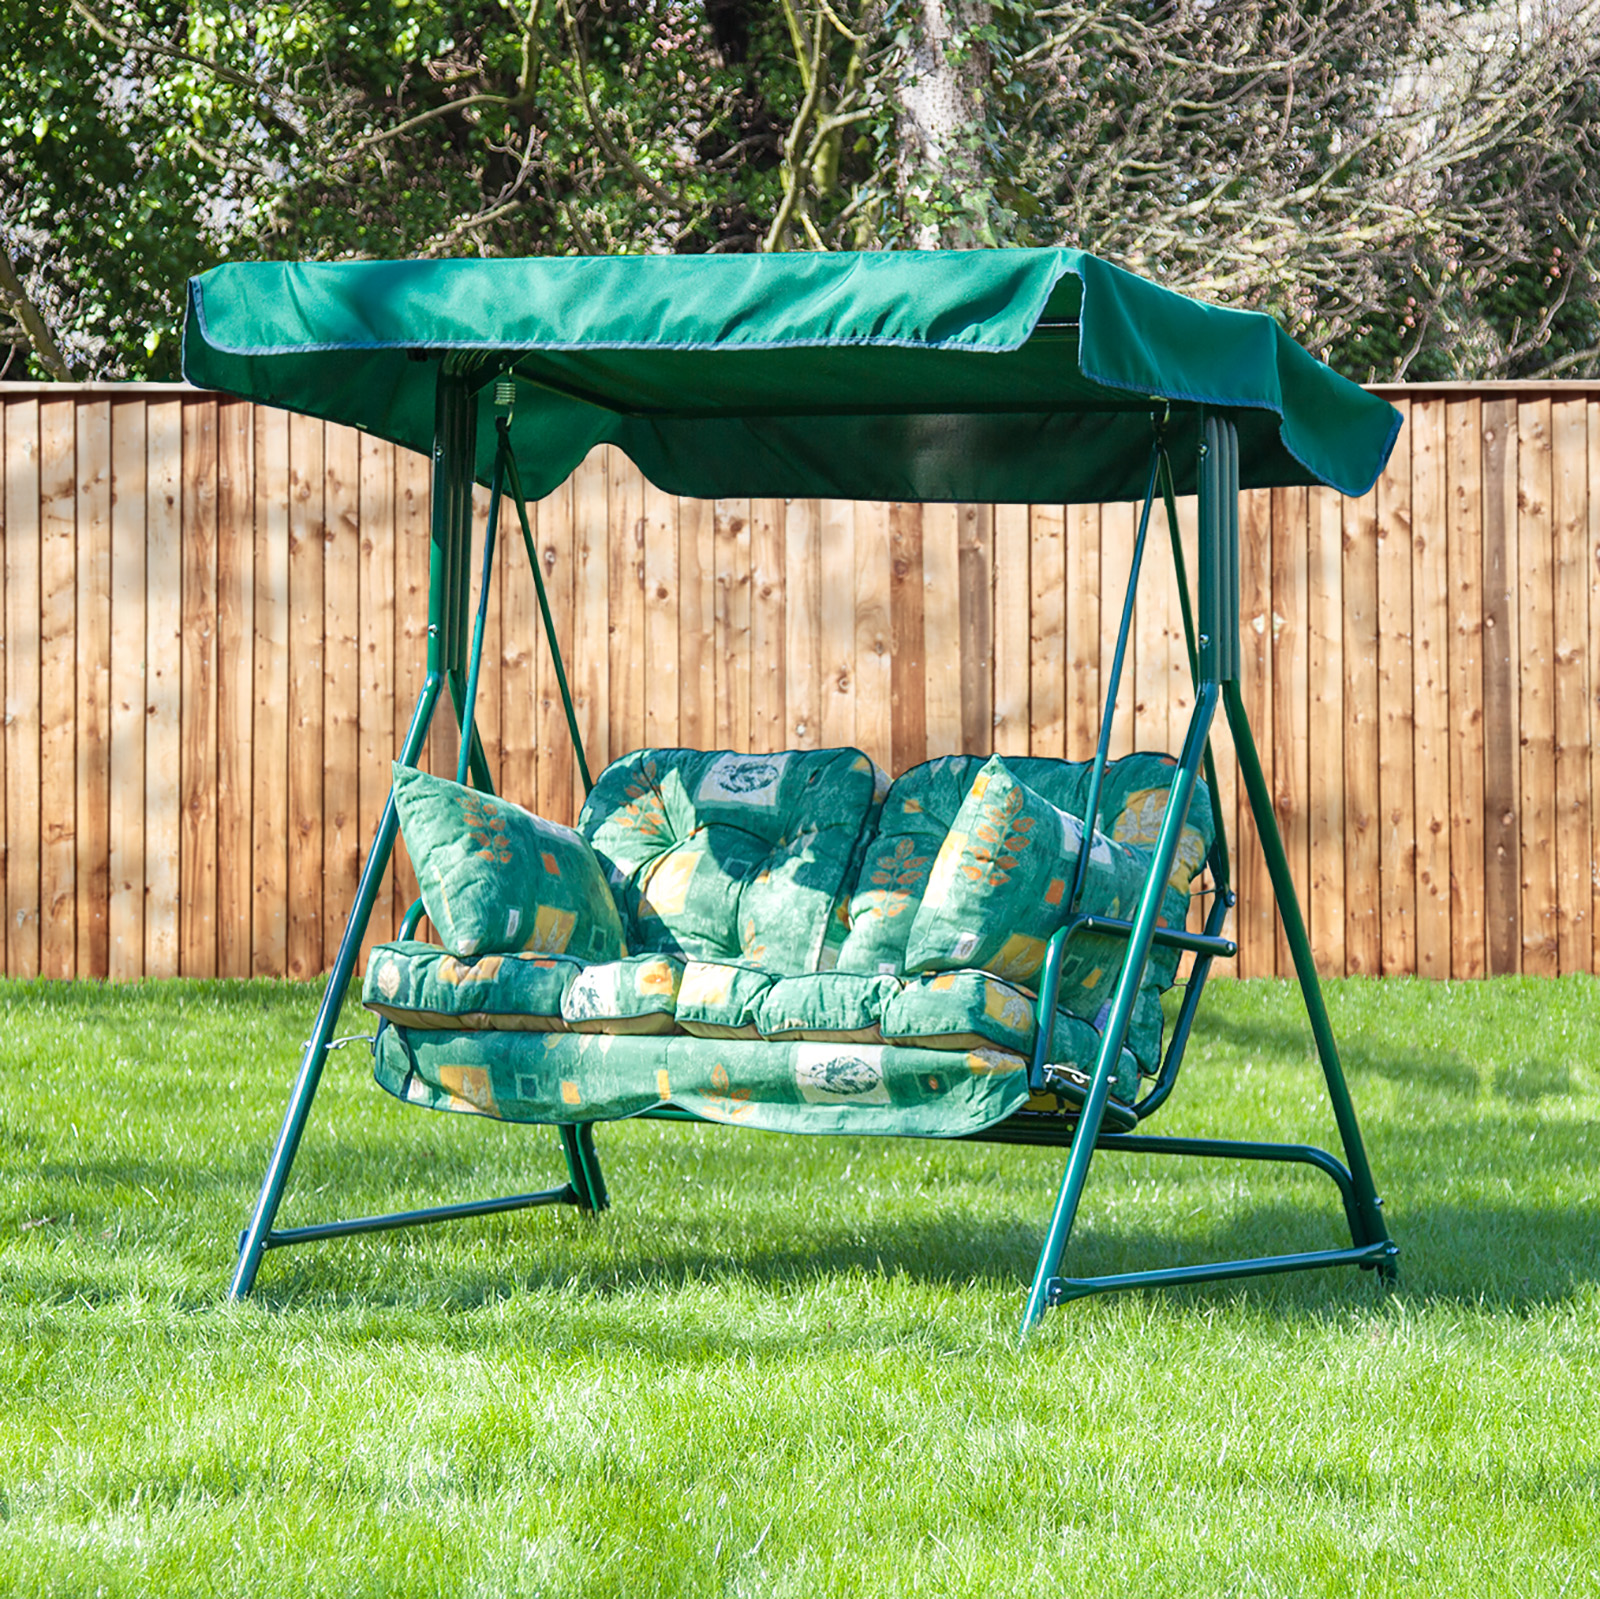 Alfresia Luxury Garden Swing Seat Cushions 2 Seater